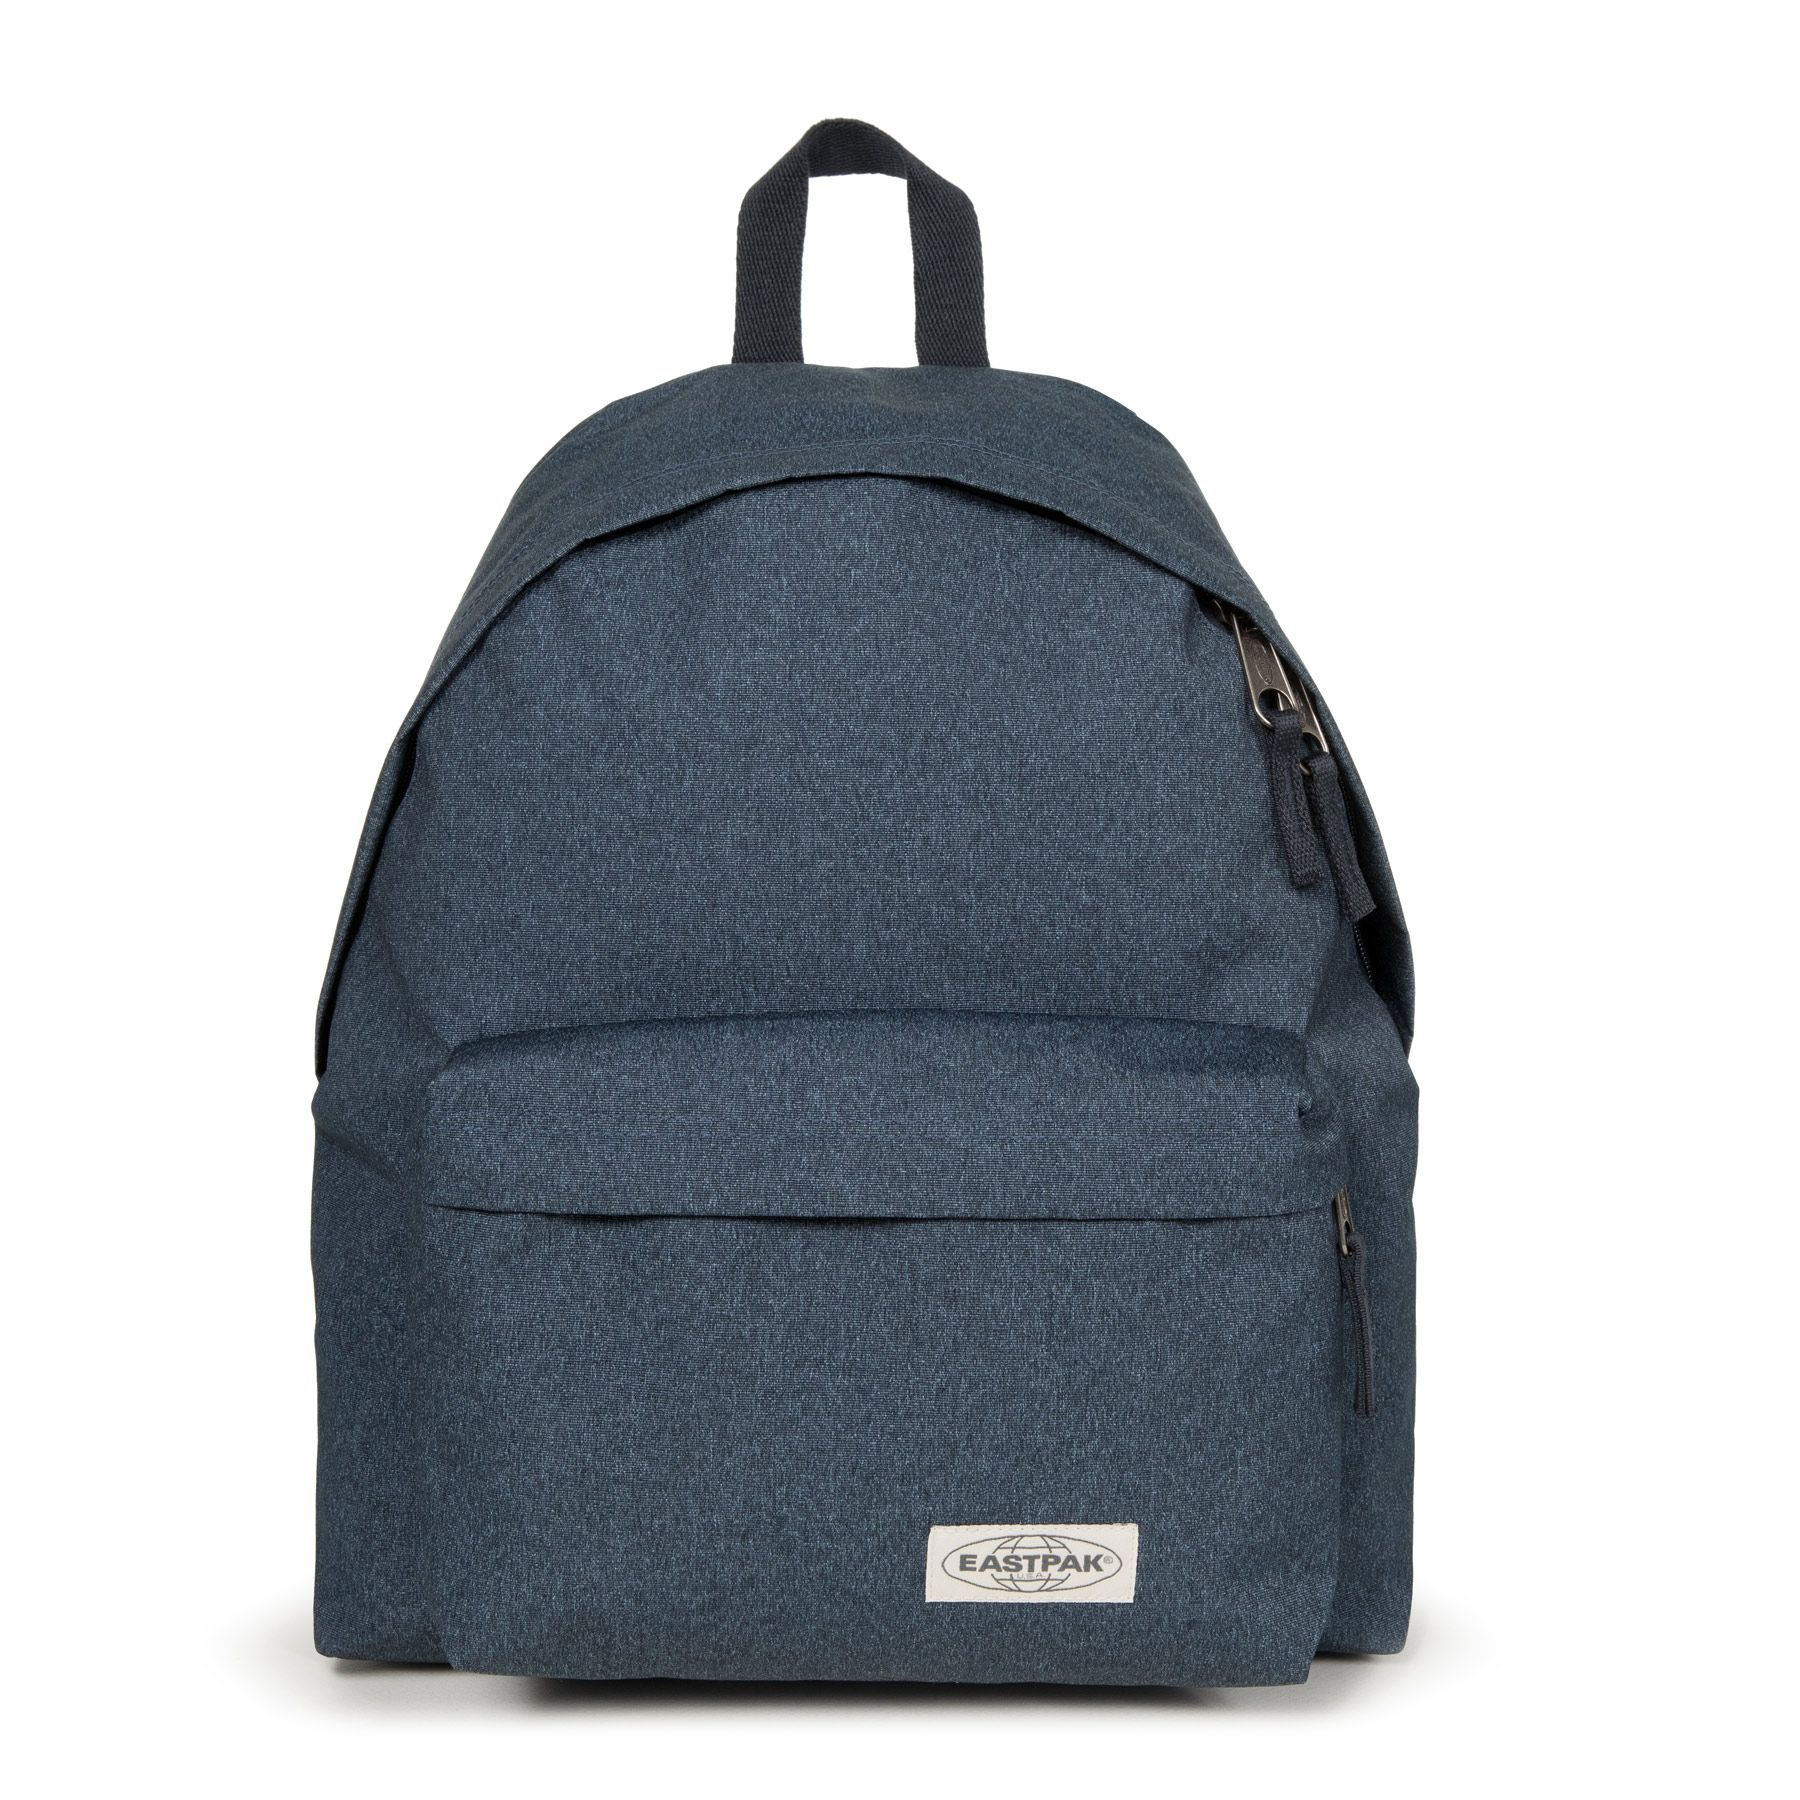 EASTPAK Padded Pak'r - Sac à dos - 40 cm - Muted blue